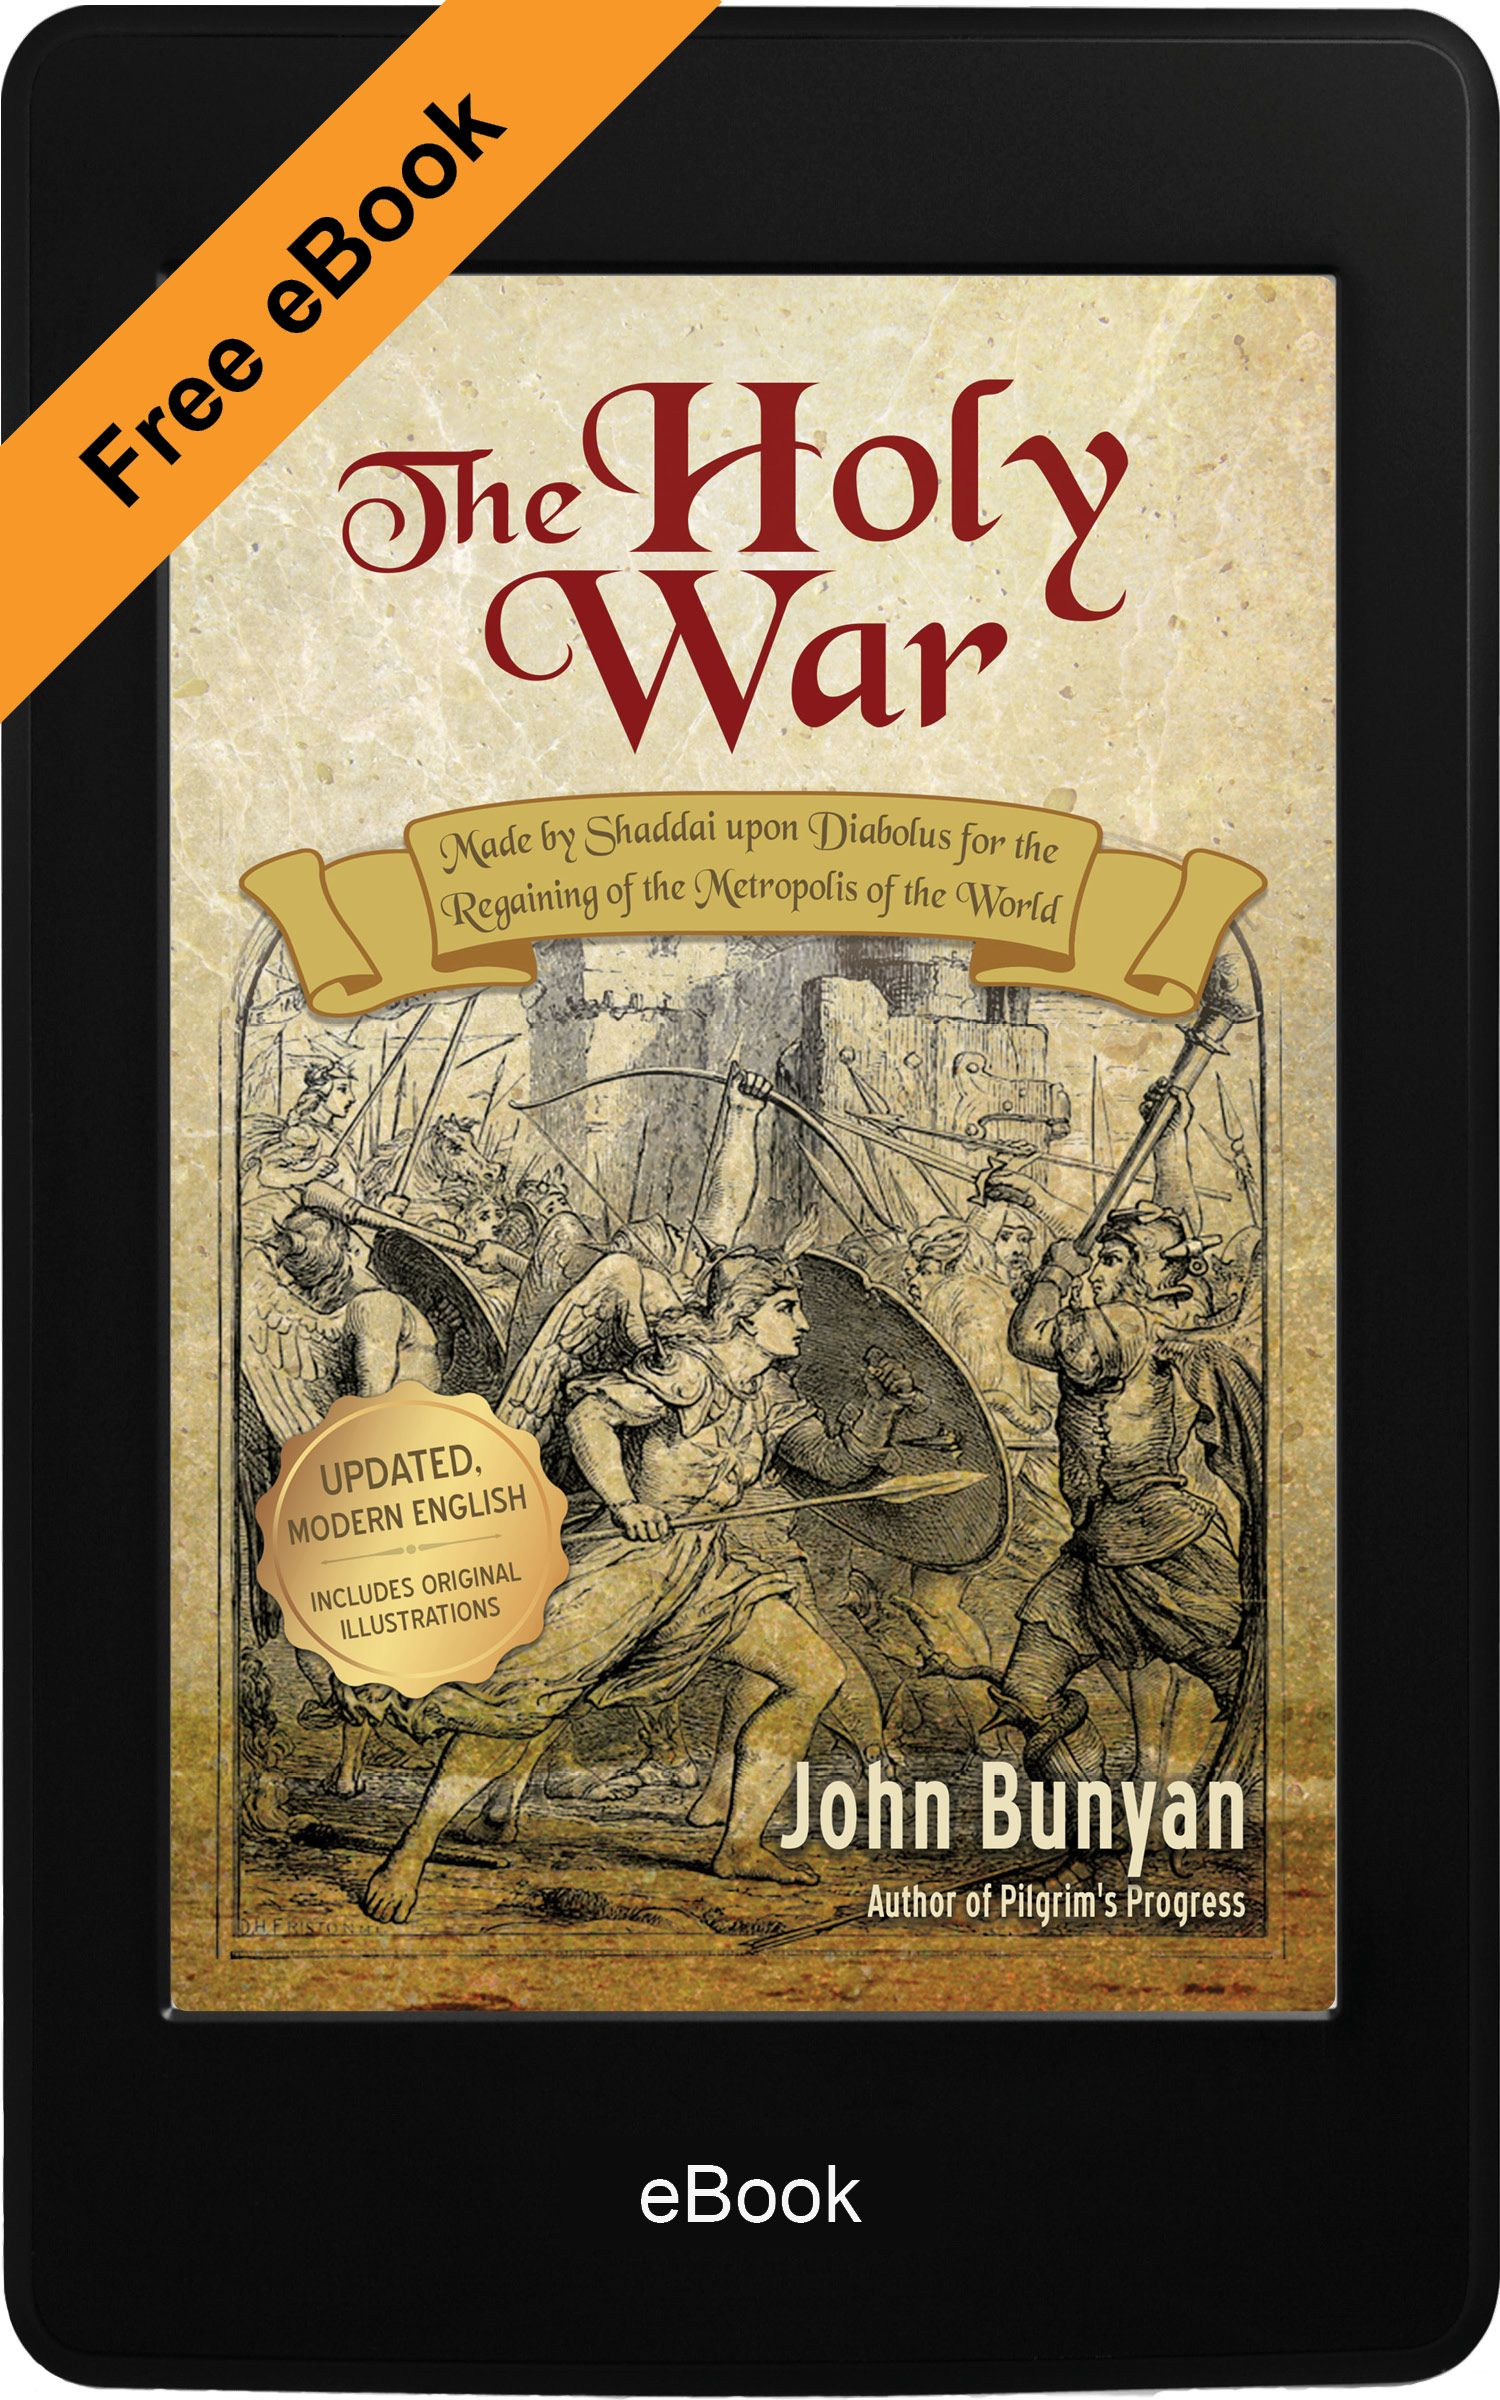 The Holy War (eBook)   Free Christian ebooks for kindle!   Religious